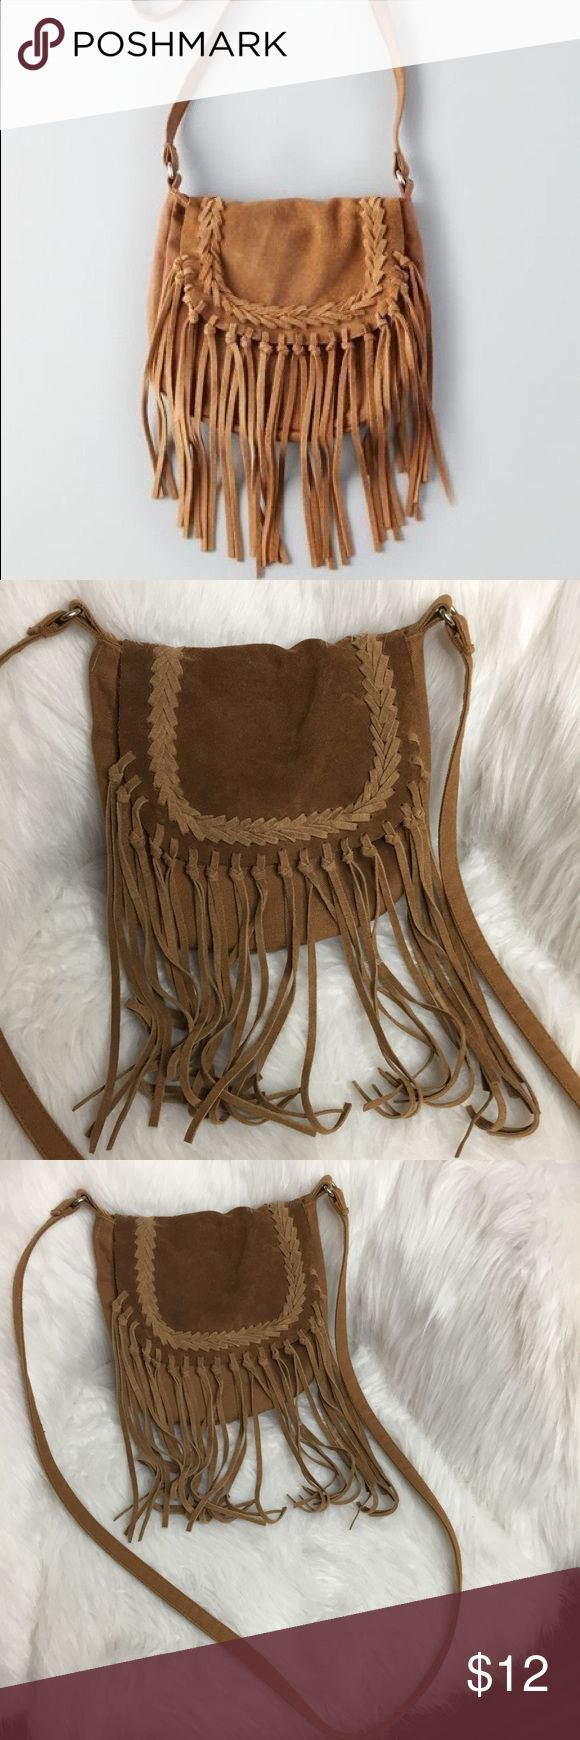 American Eagle Outfitters AEO Fringe Crossbody Bag American Eagle Outfitters AEO Fringe Crossbody Tote Bag in Cognac American Eagle Outfitters Bags Crossbody Bags